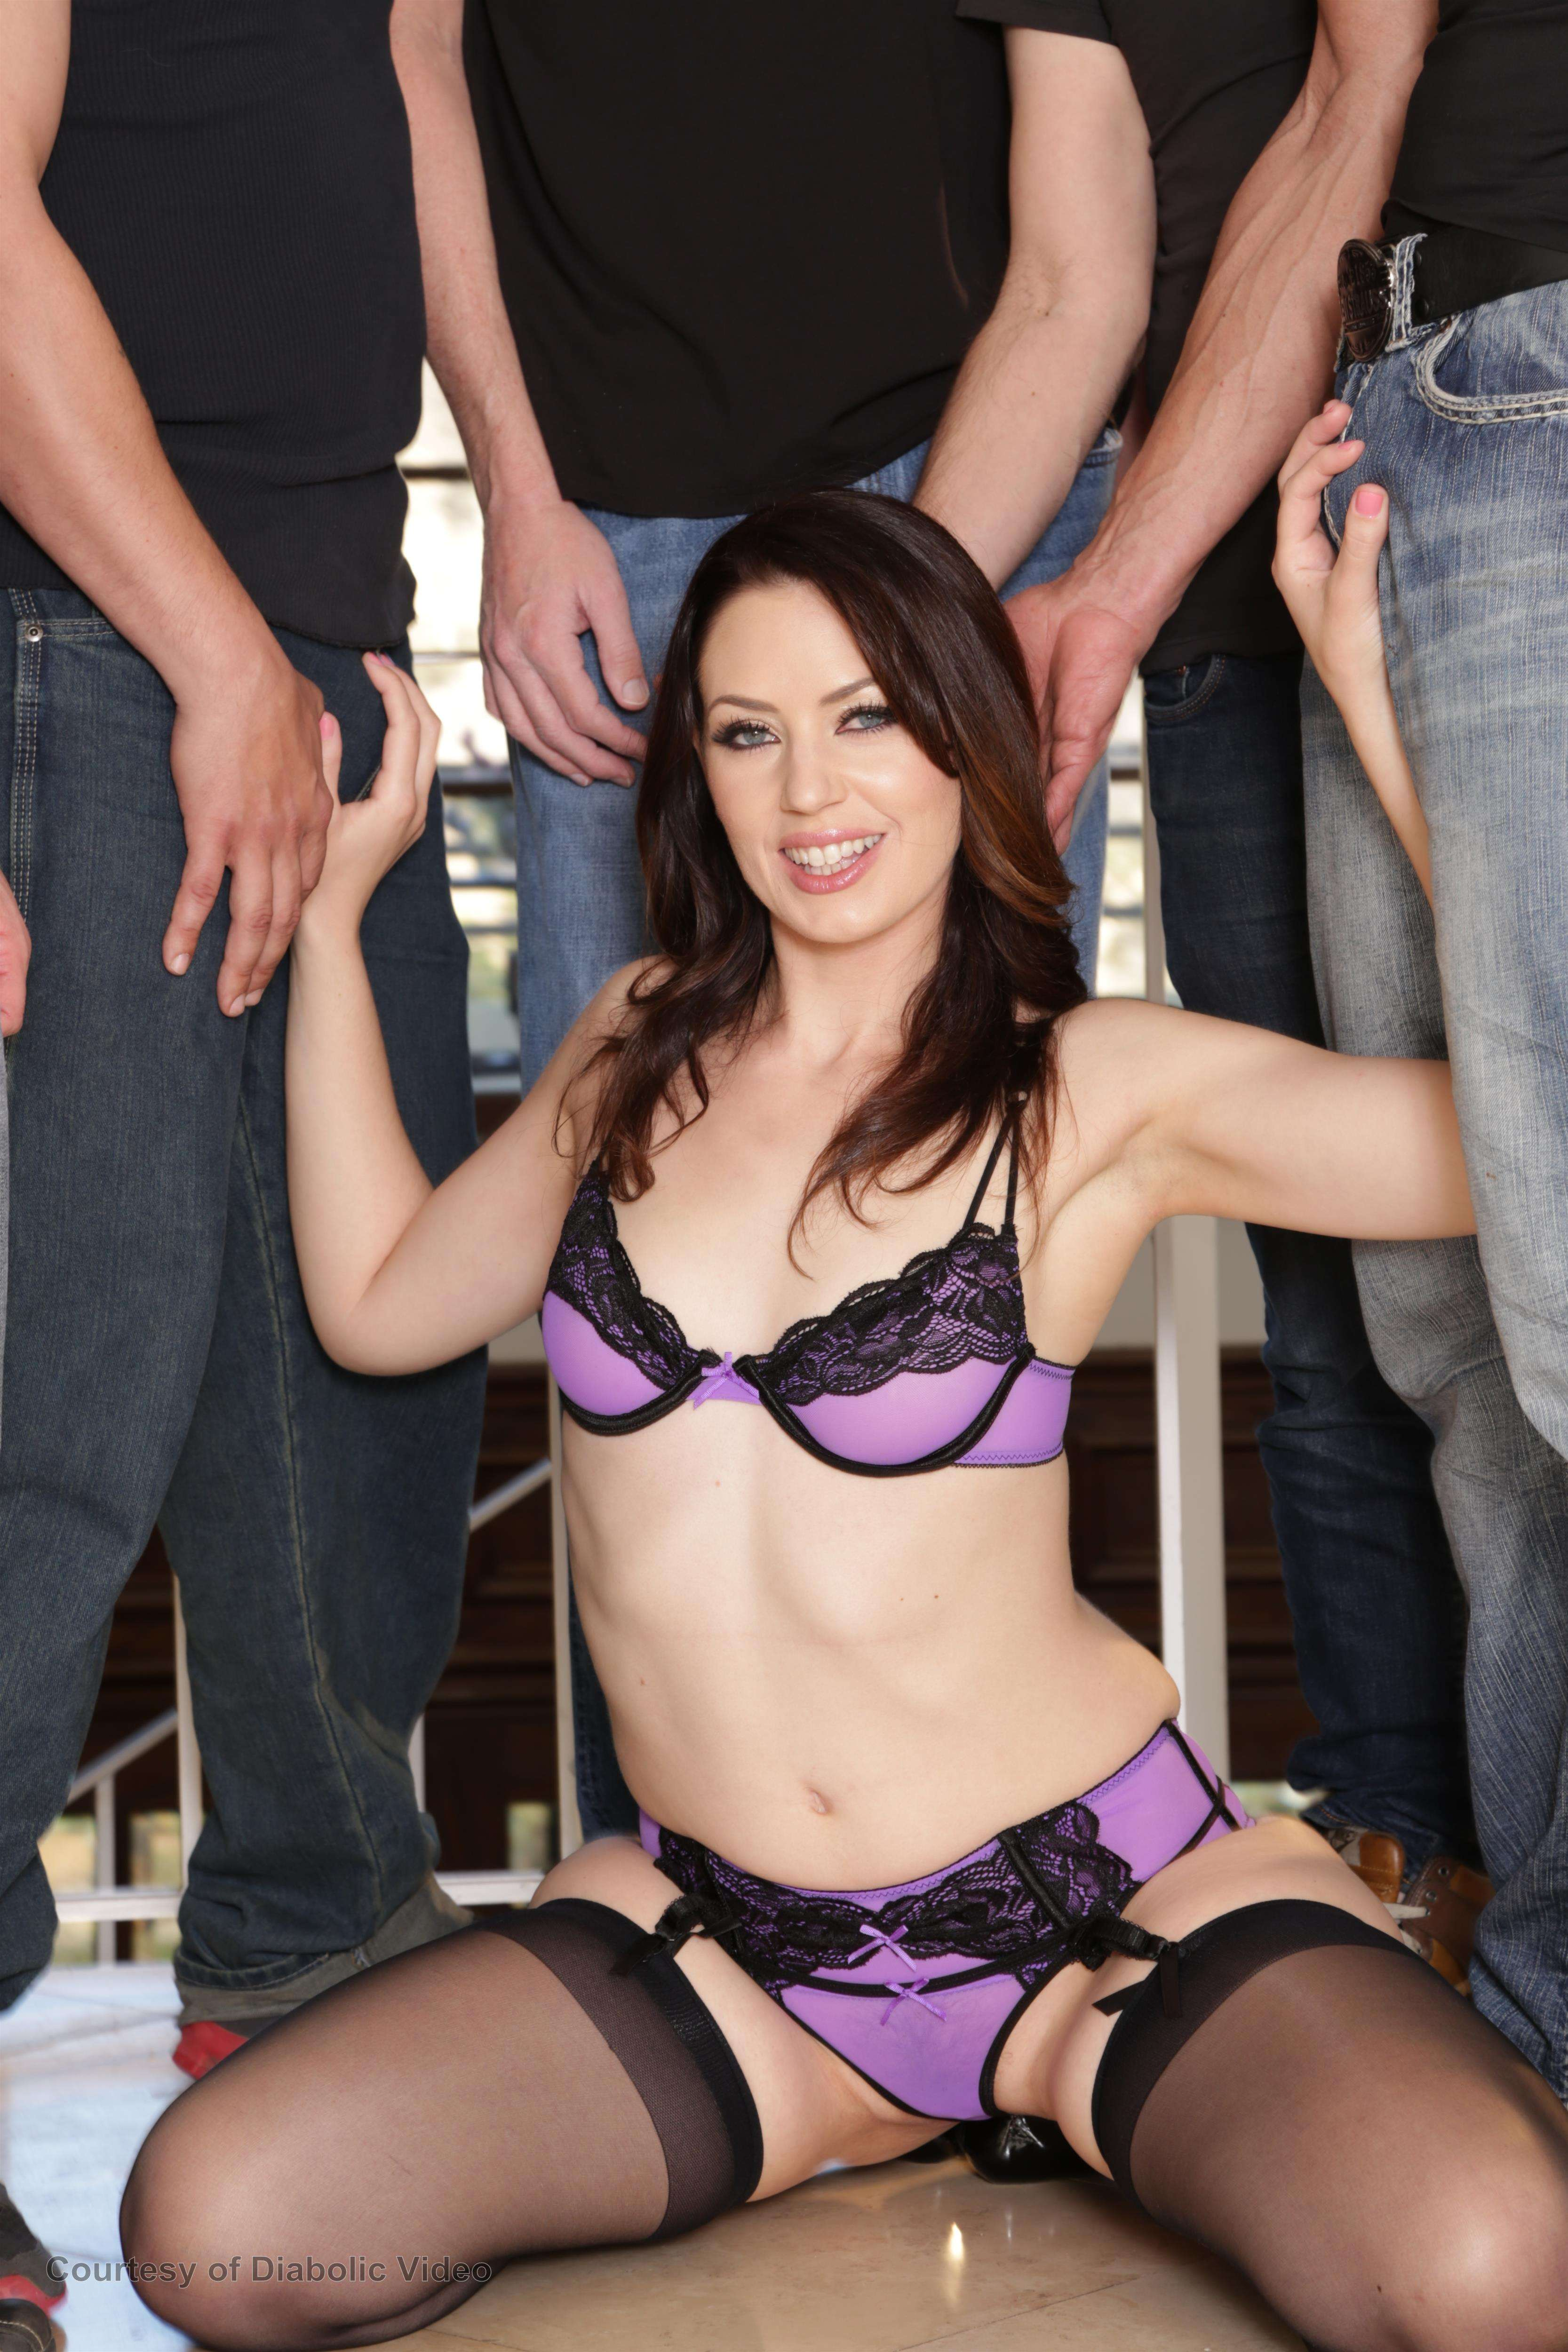 Agree, the diabolic anabolic gangbang auditions 7 commit error